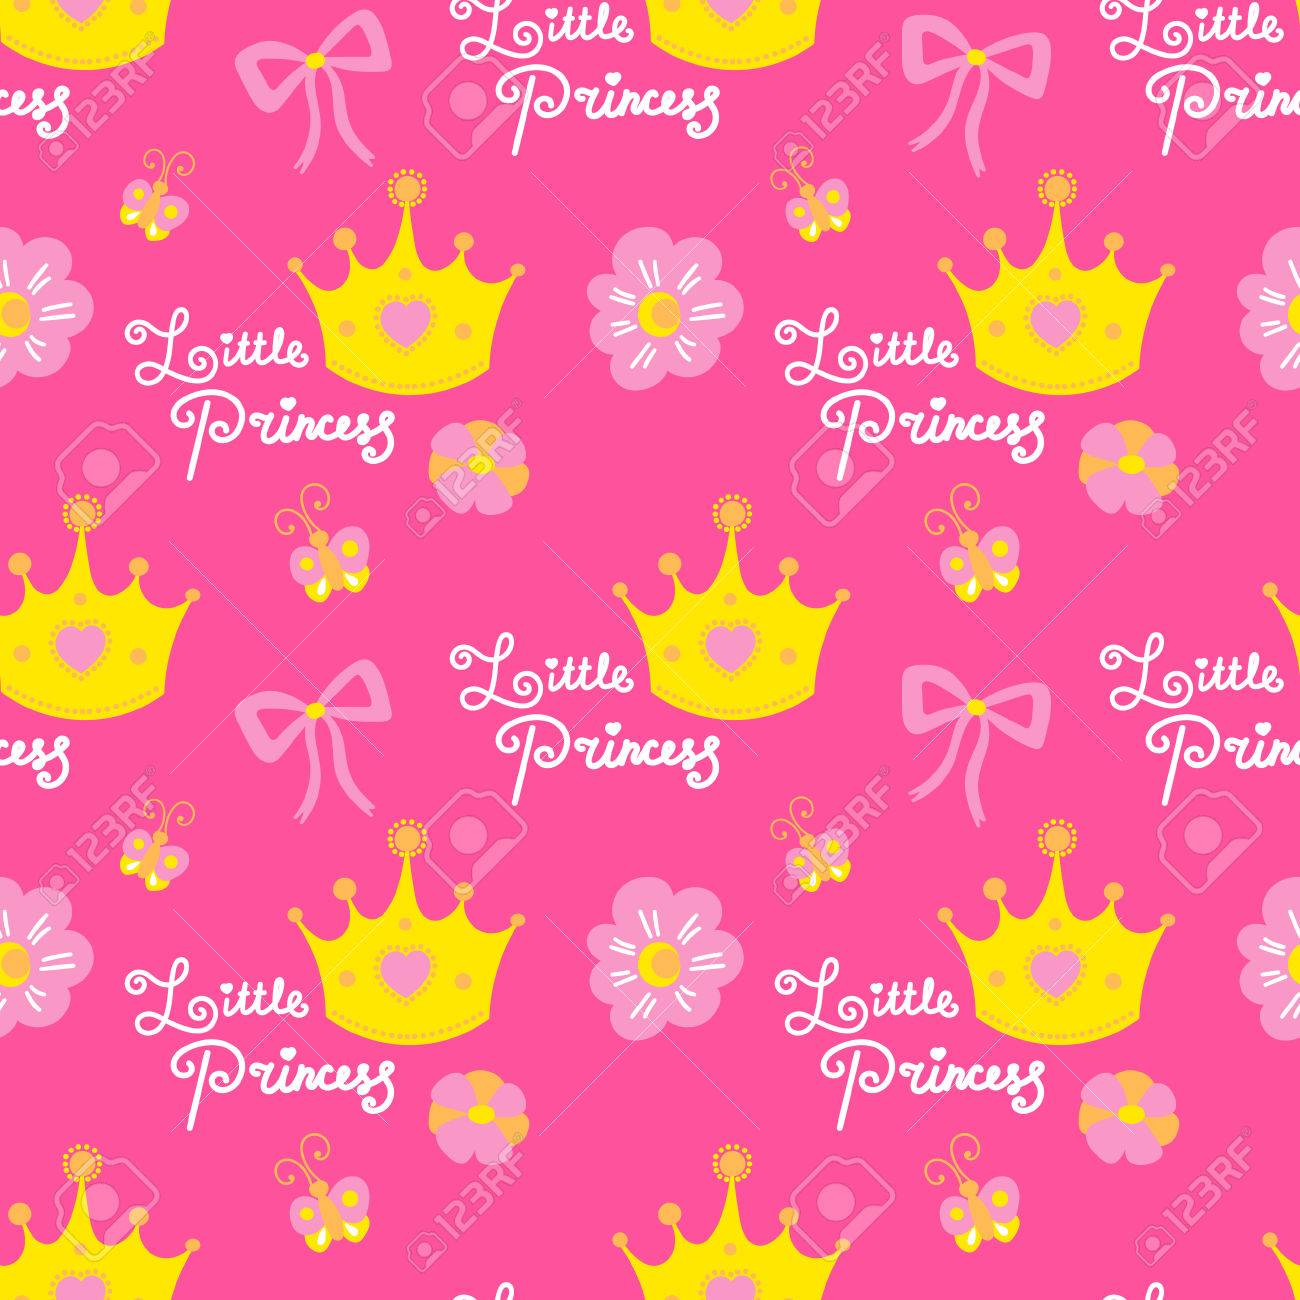 Little Princess Pattern Vector Pink Girl Background For Children Royalty Free Cliparts Vectors And Stock Illustration Image 75733269